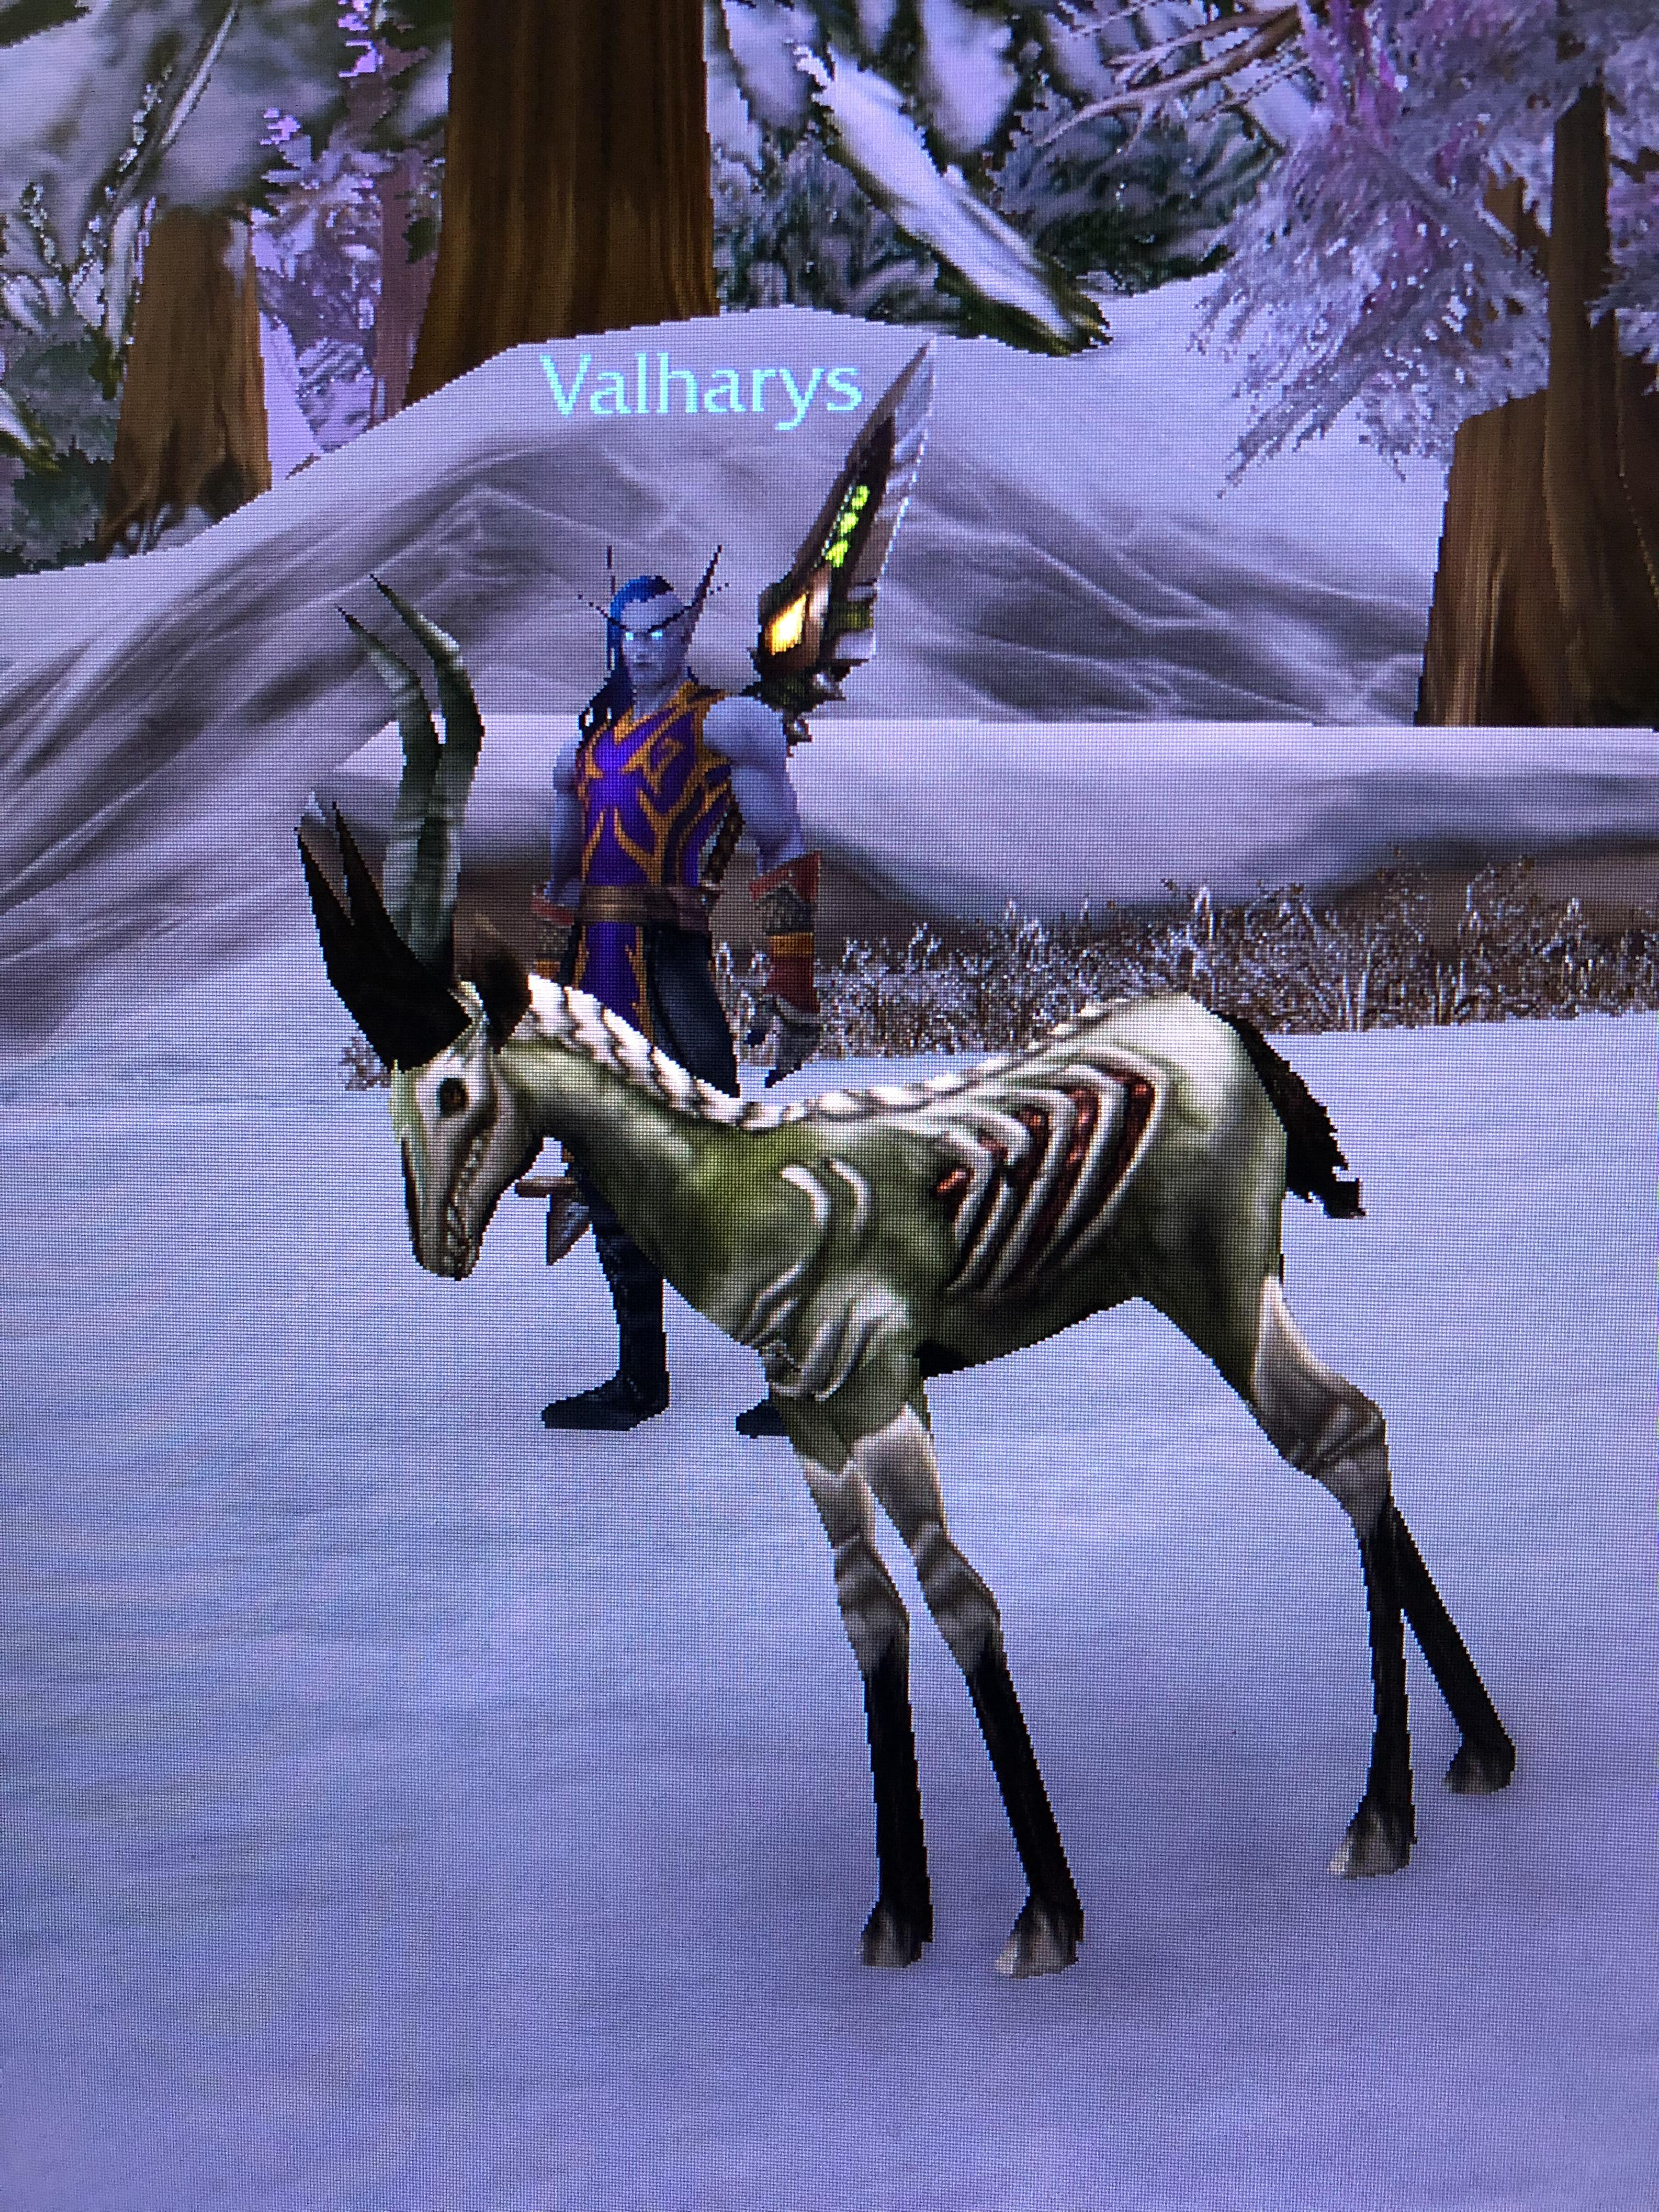 Tameable Pets Wow : tameable, Wouldn't, Believe, Excited, Monstrosity.